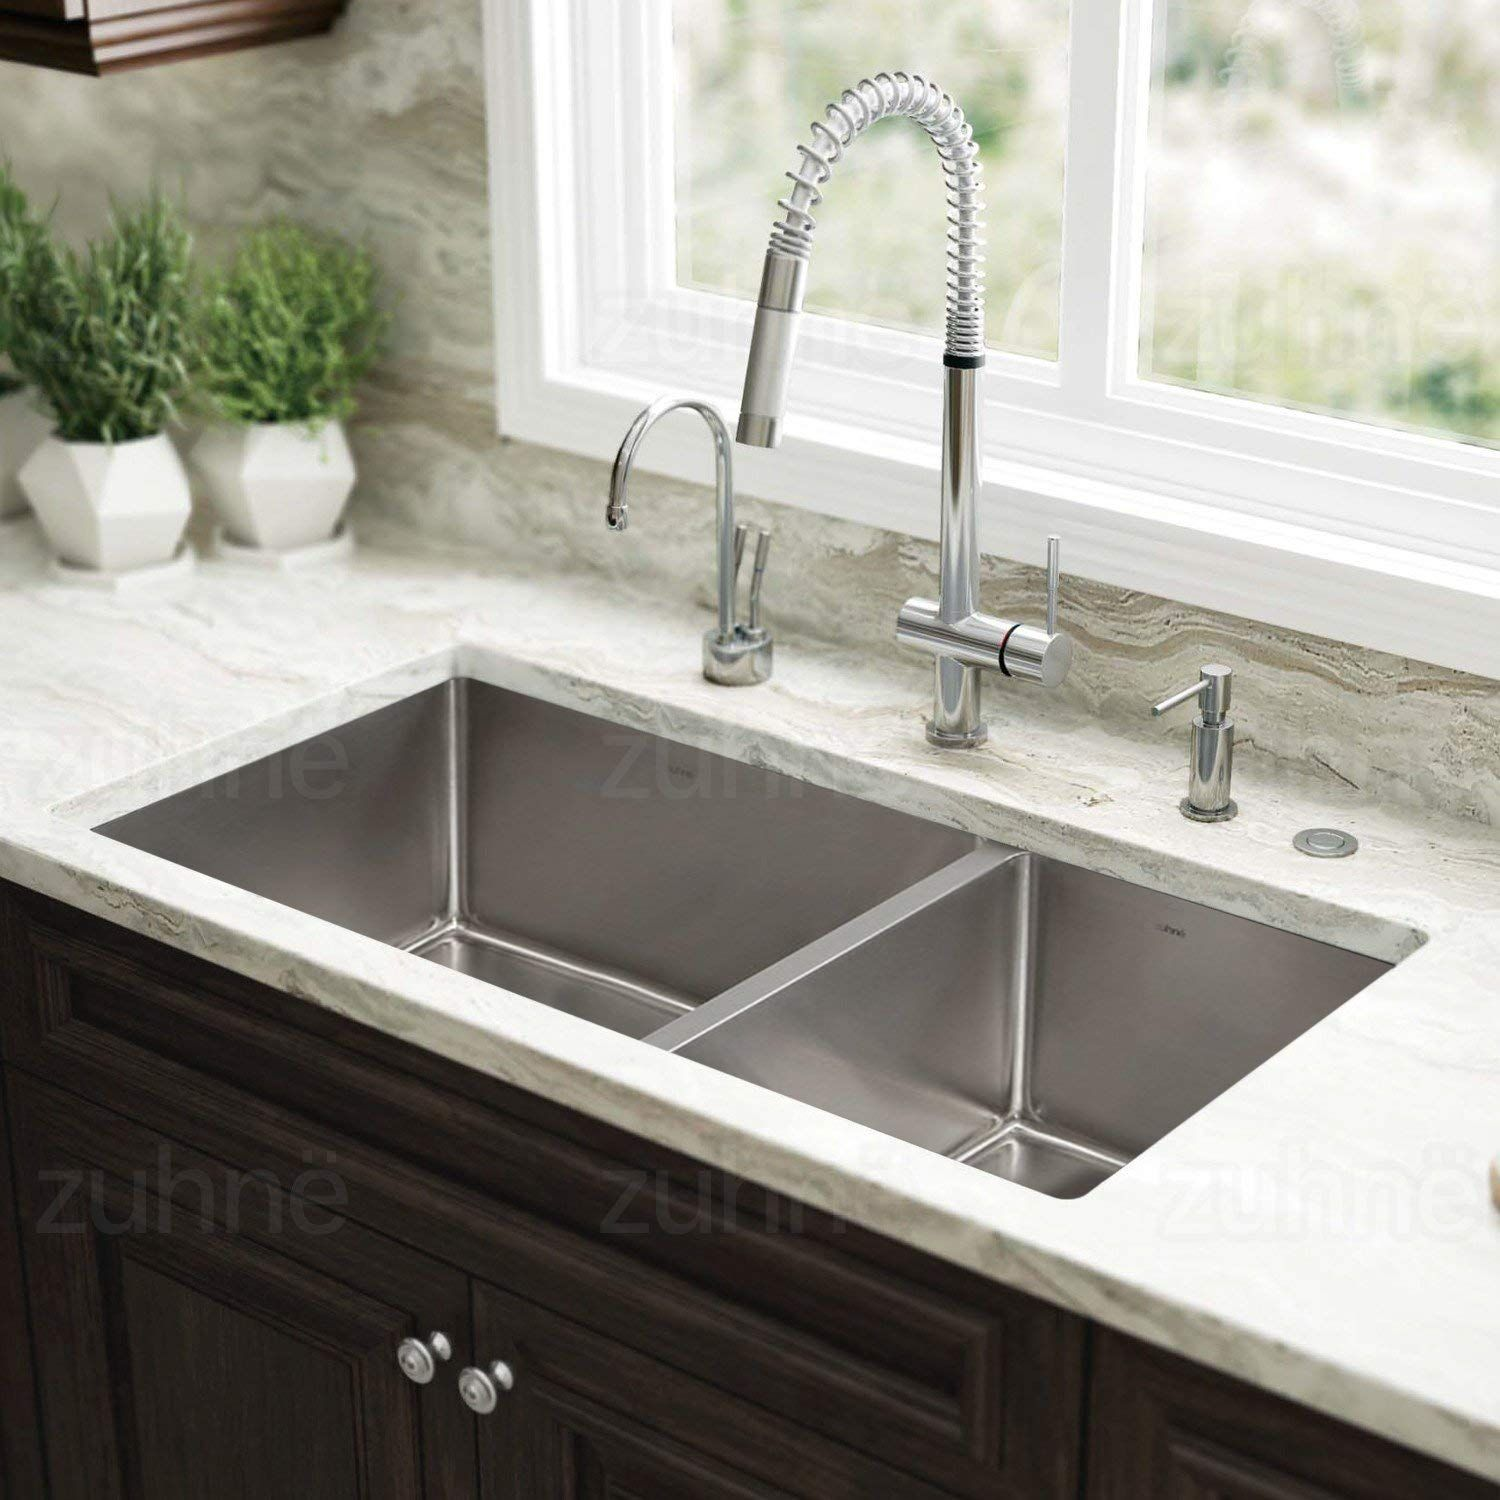 Uncle Paul Best Stainless Steel Sinks And His Top Choices Kitchen